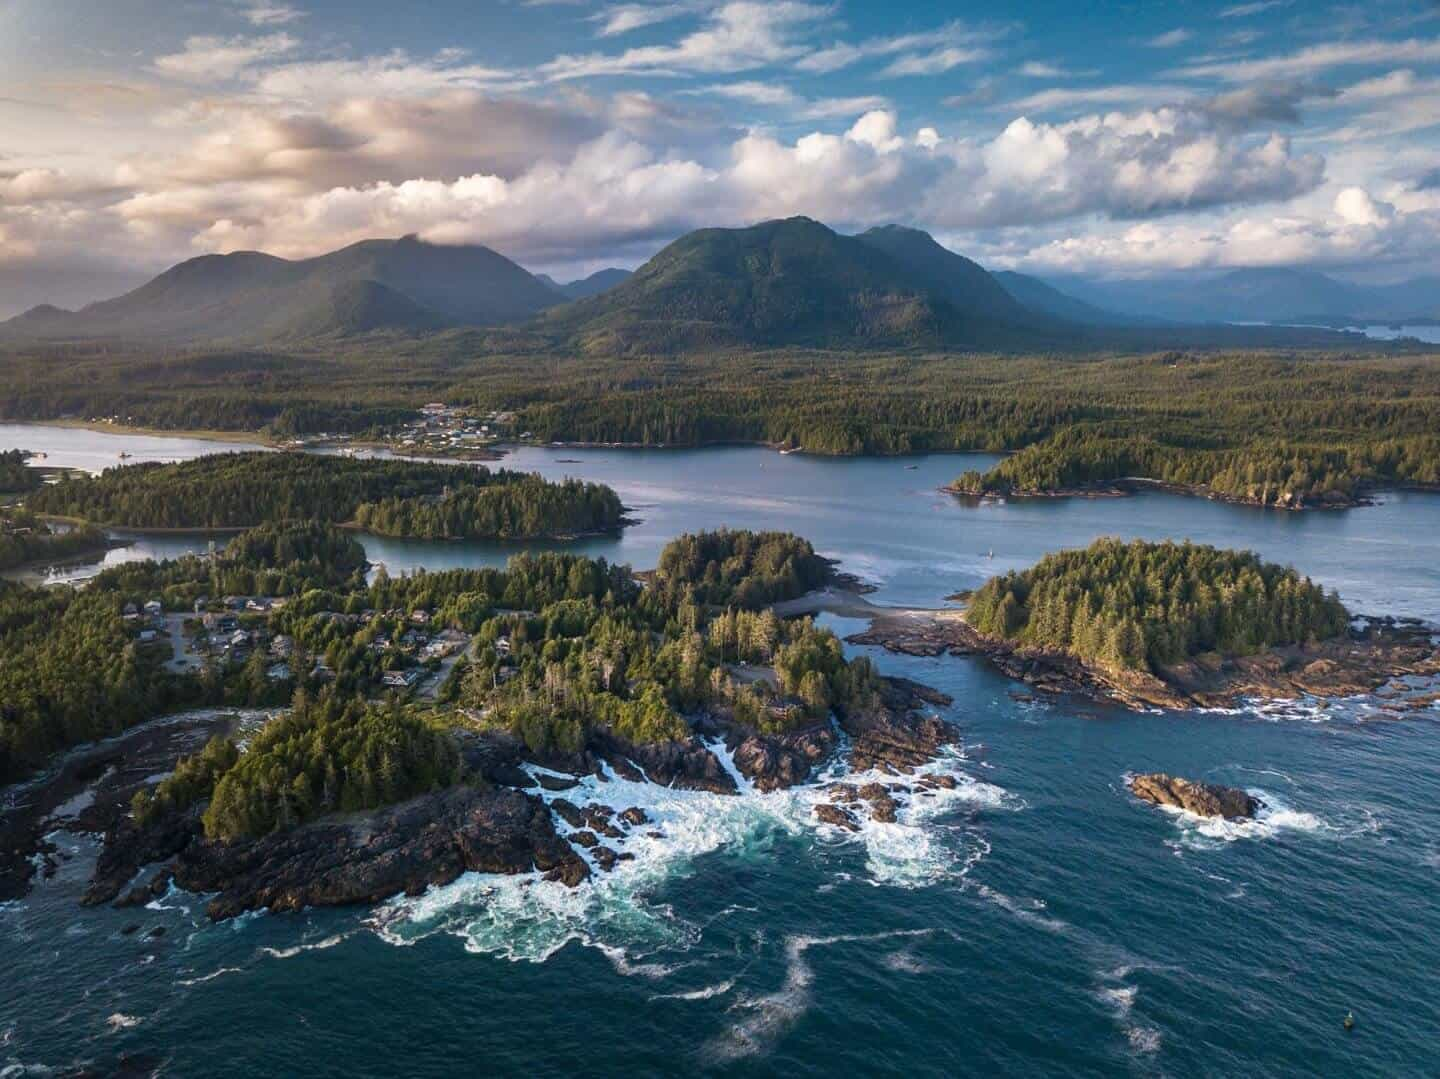 Aerial photography of Vancouver Island, British Colombia